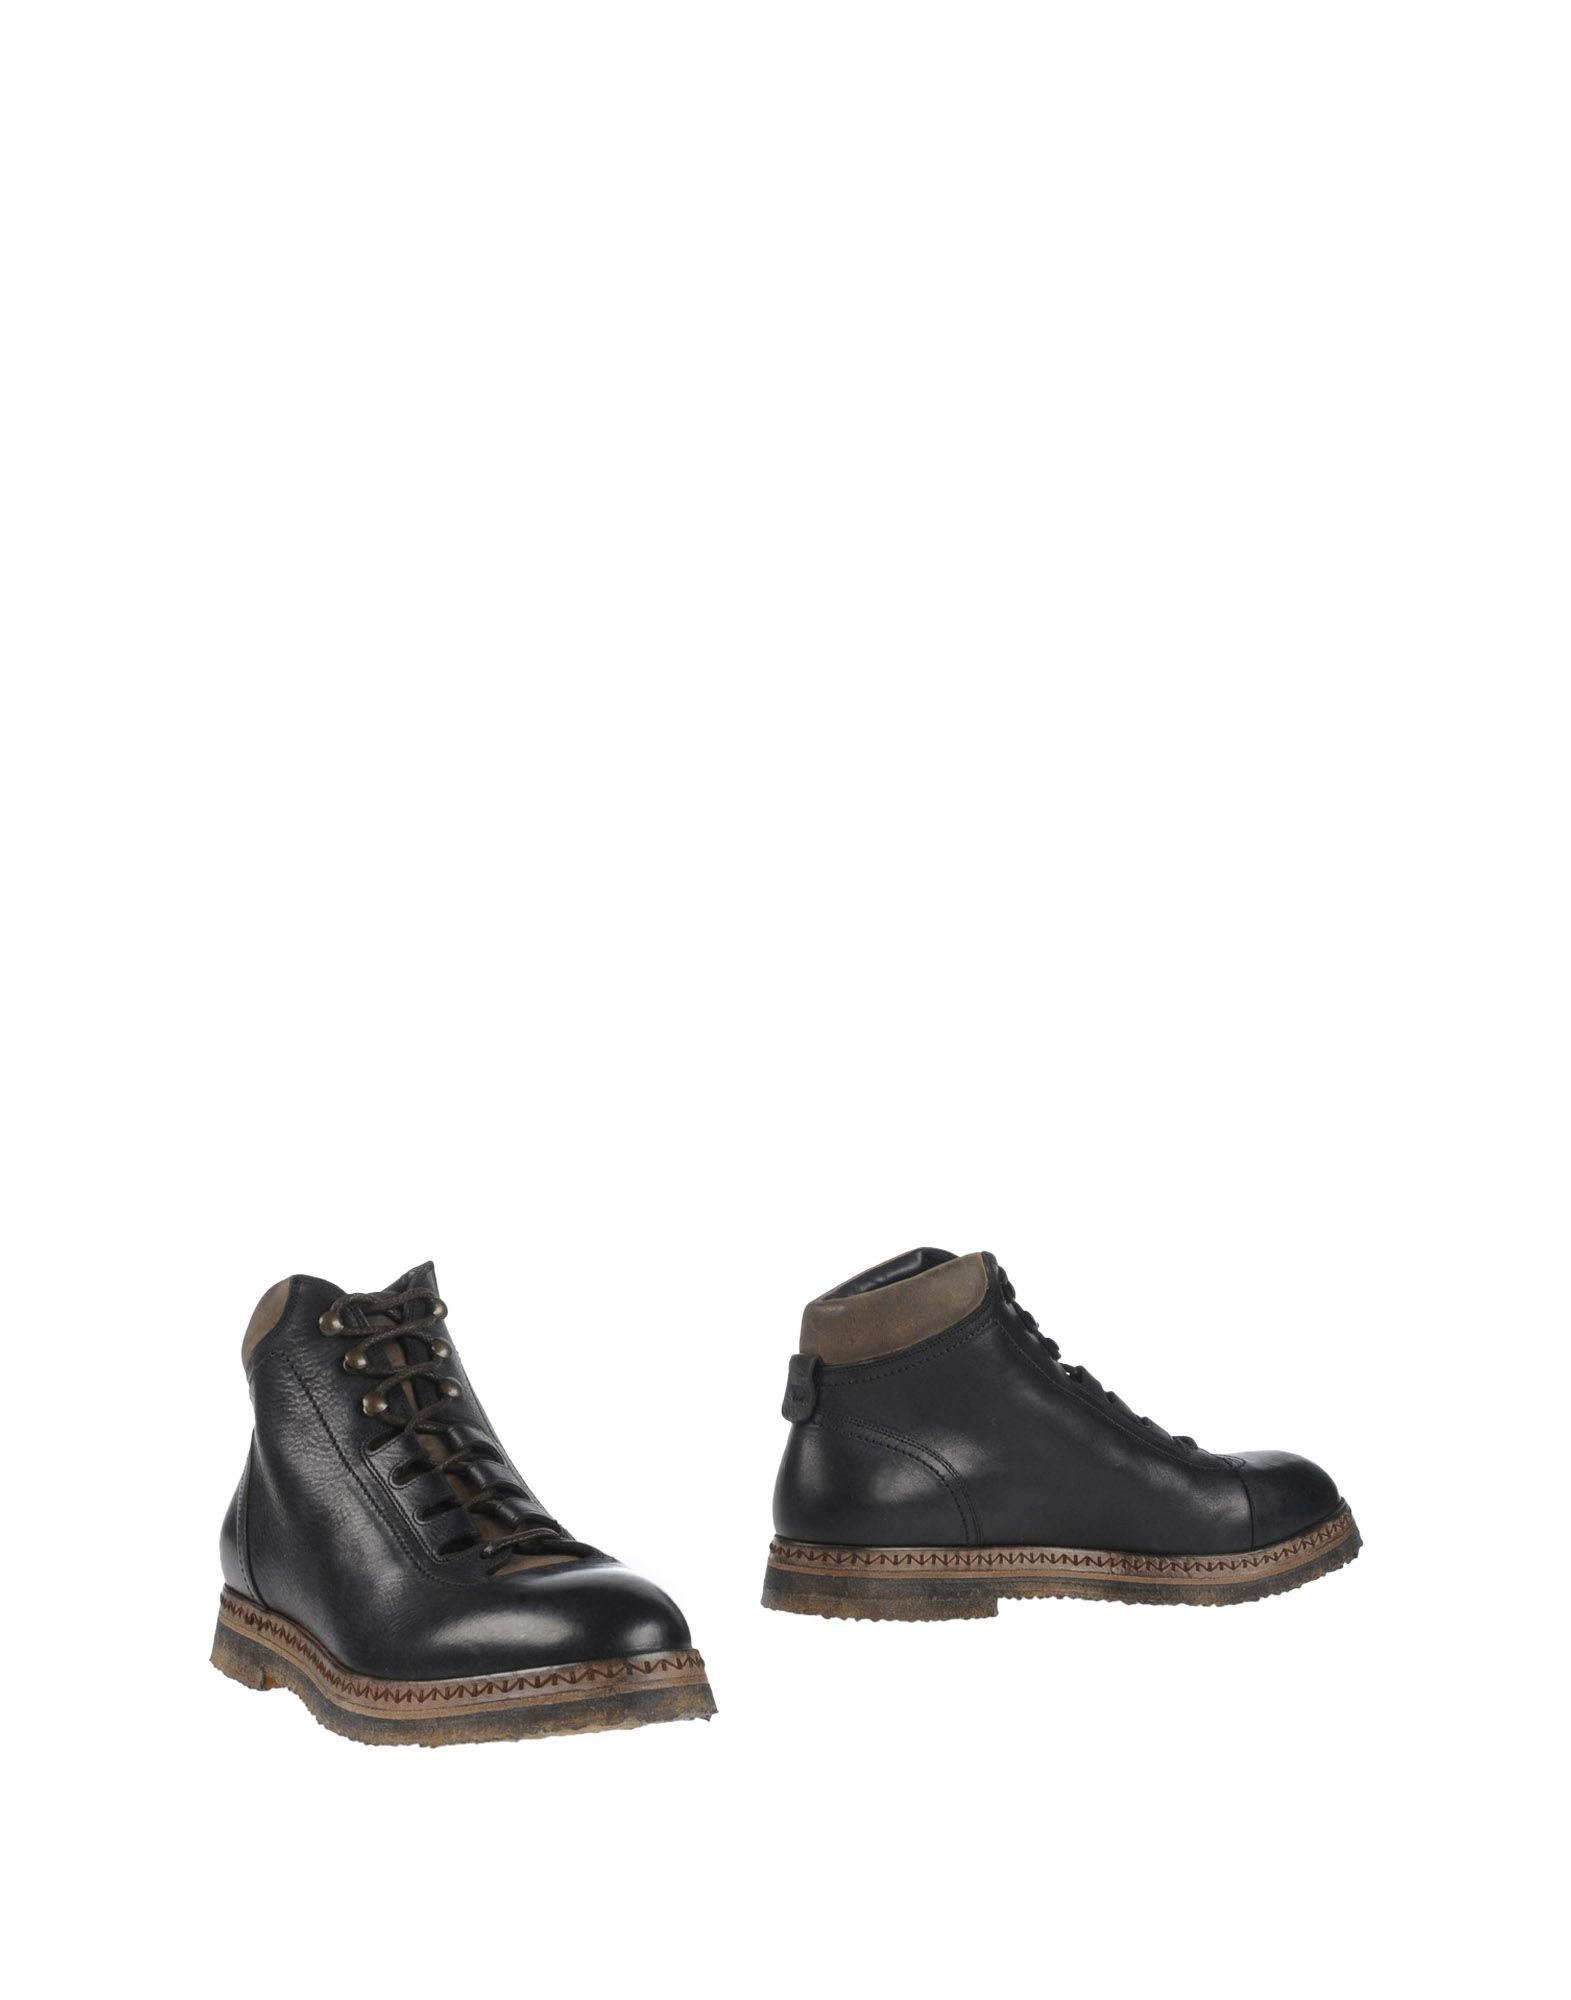 dolce gabbana ankle boots in black for lyst